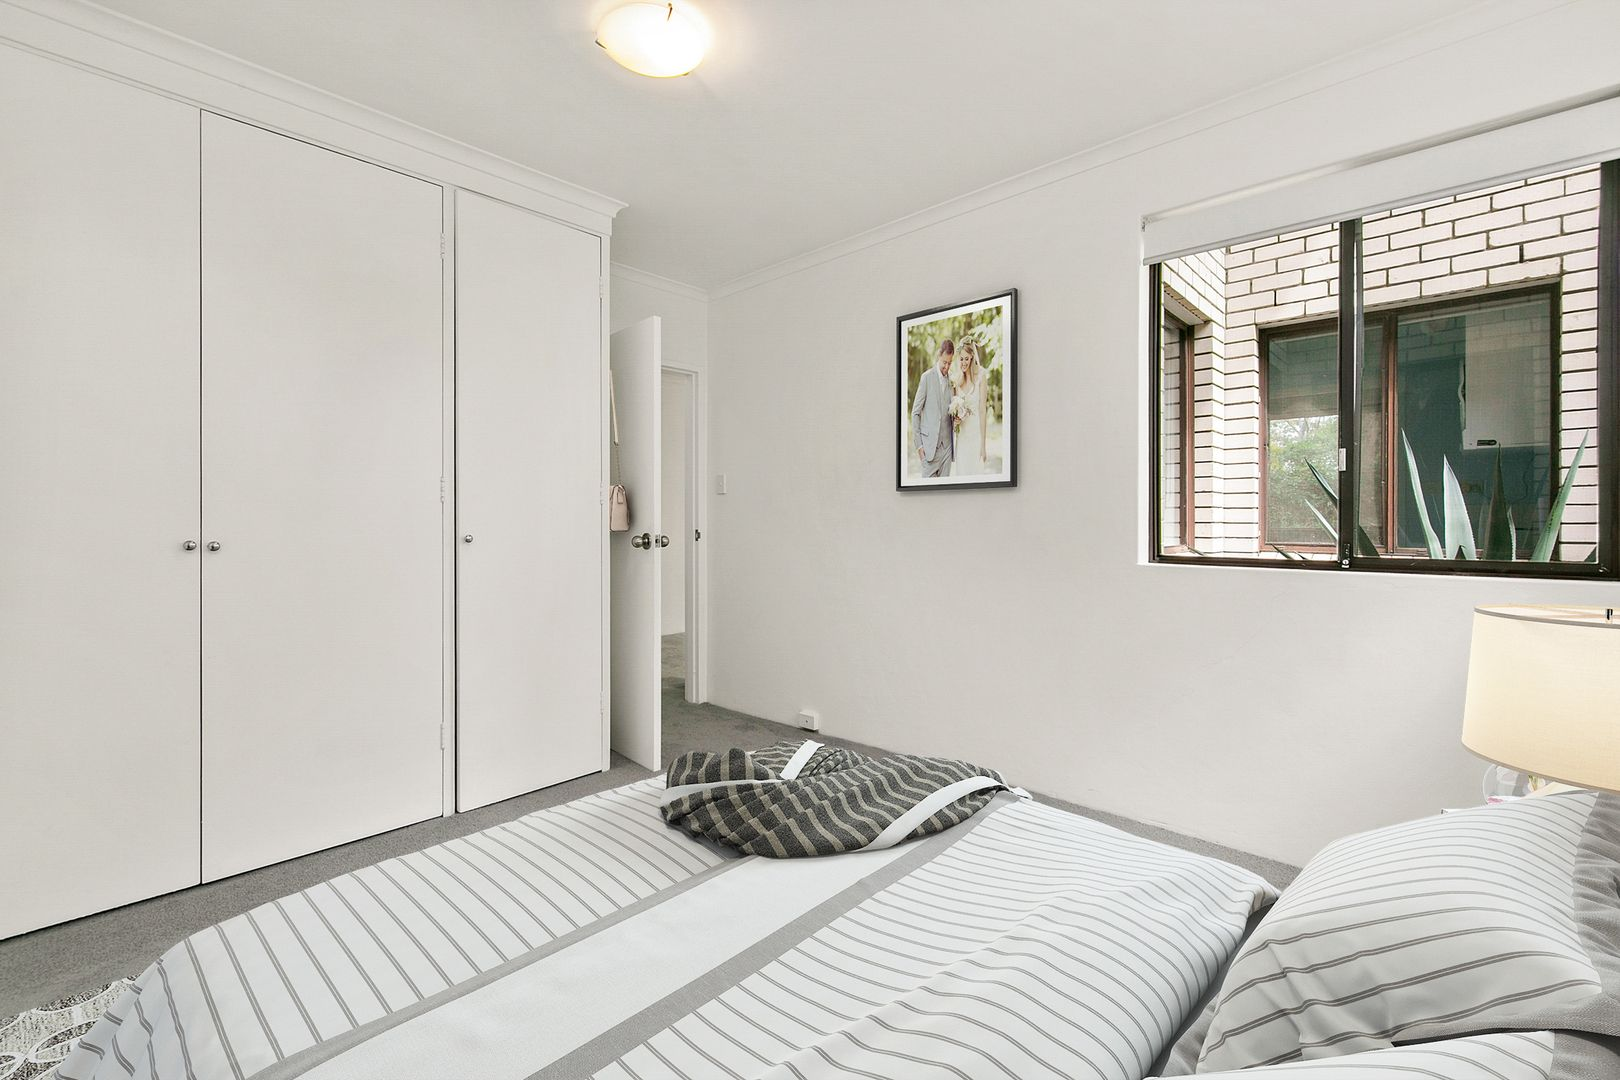 23/1292 Pacific Hwy, Turramurra NSW 2074, Image 1